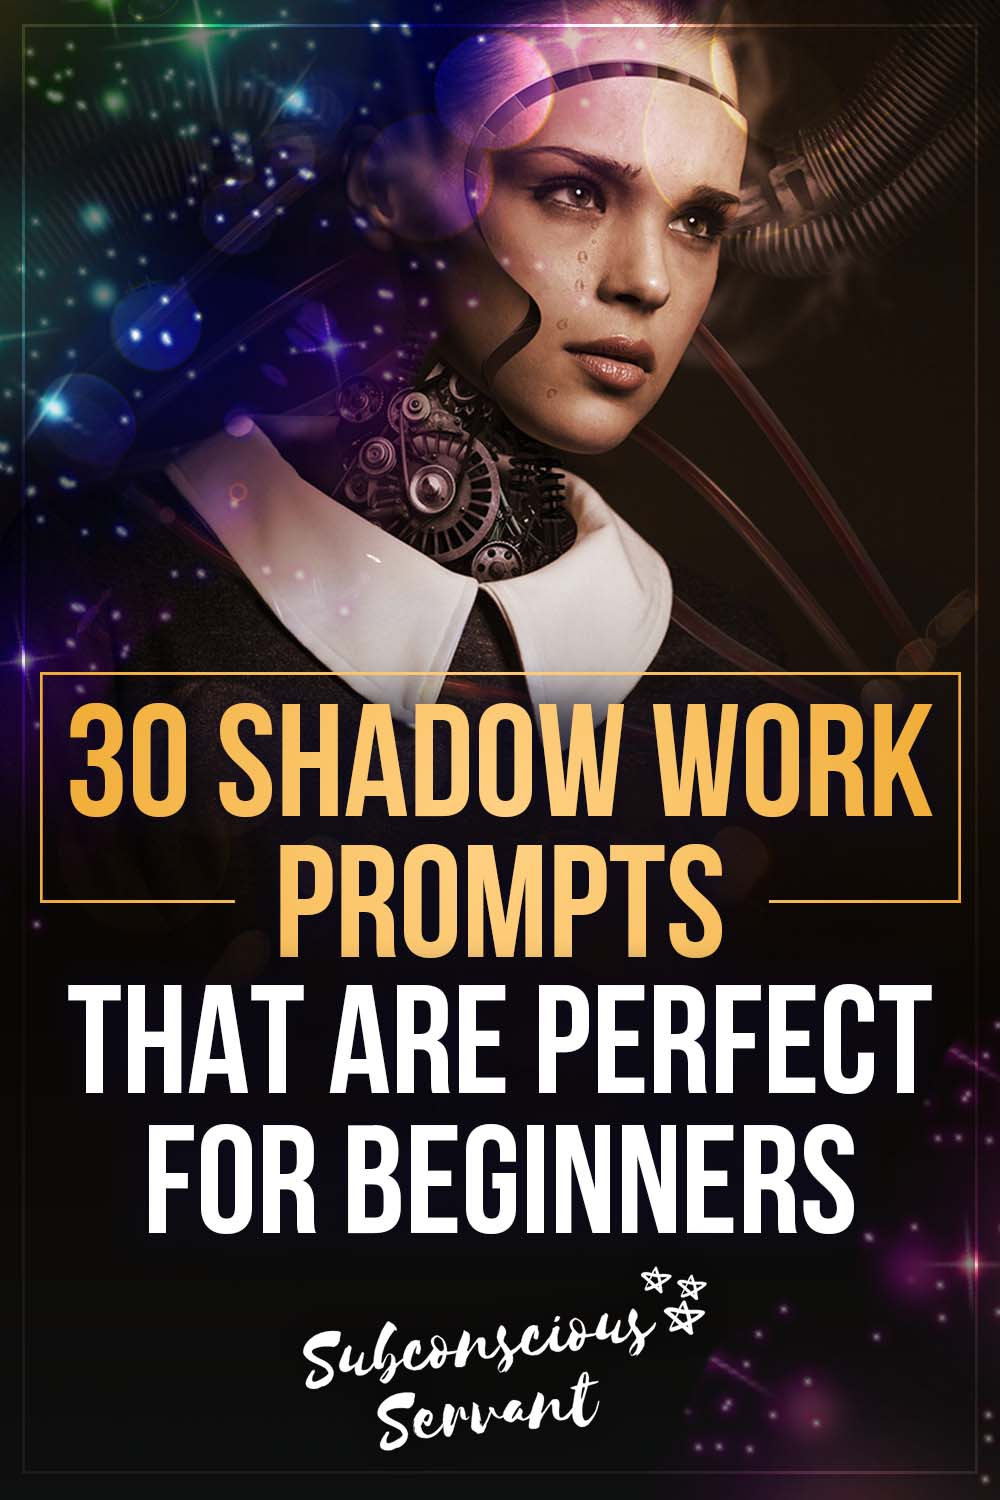 30 Shadow Work Prompts [That Are Perfect For Beginners]